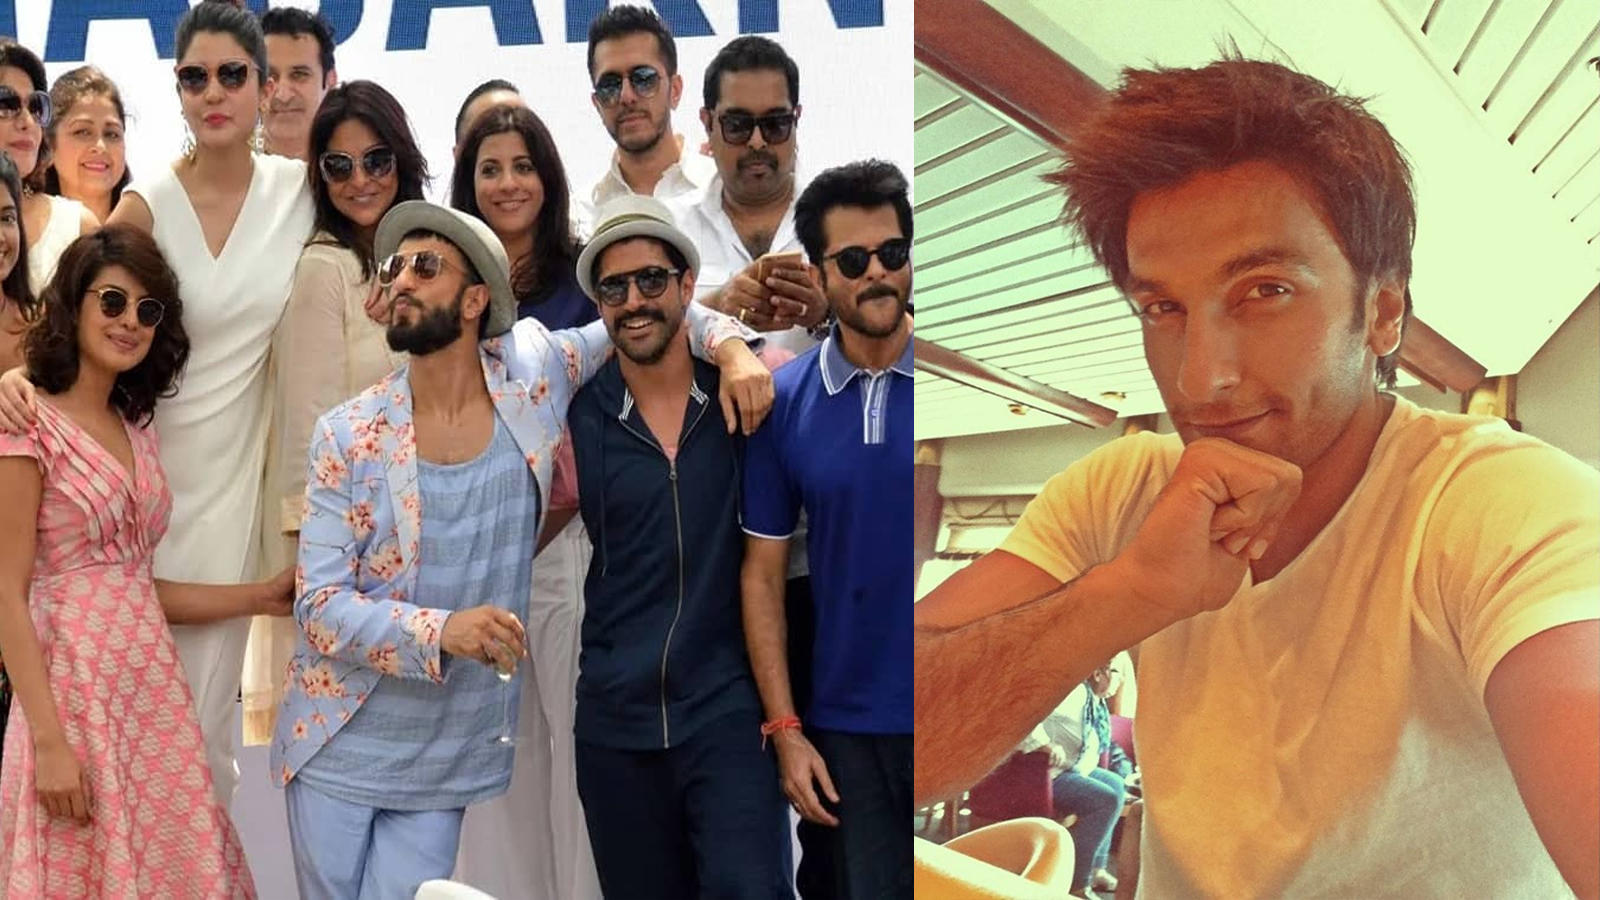 ranveer-singh-shares-a-throwback-picture-from-dil-dhadakne-do-sets-as-the-film-completes-5-years